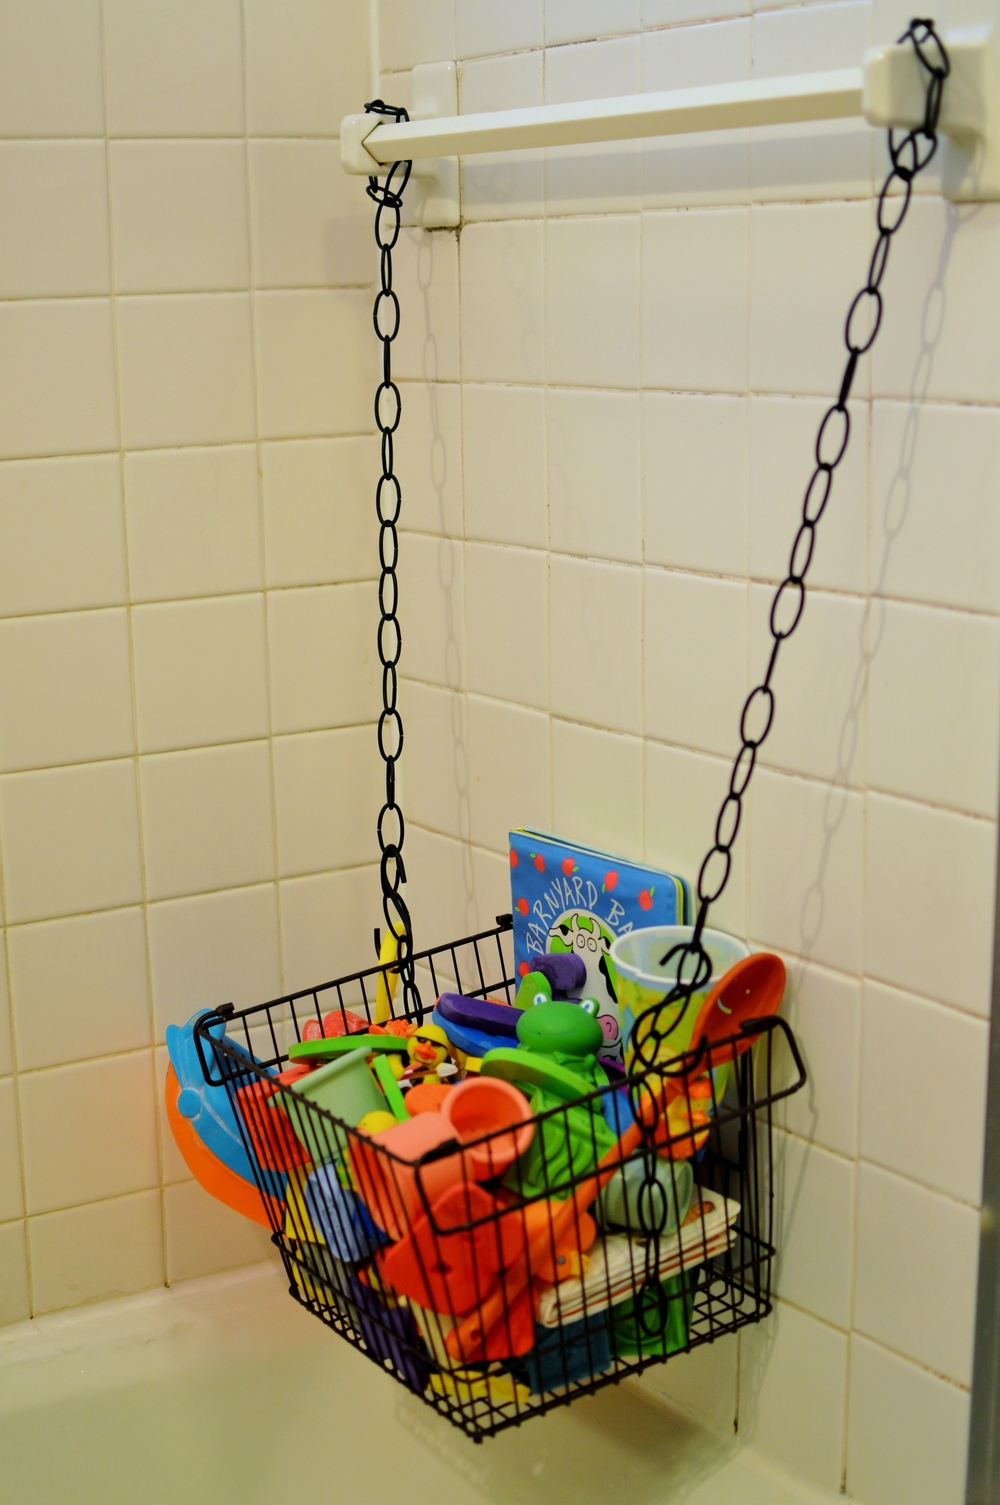 Simple Solution:  Use a basket and chains to create a sturdy, sophisticated bath toy bin.